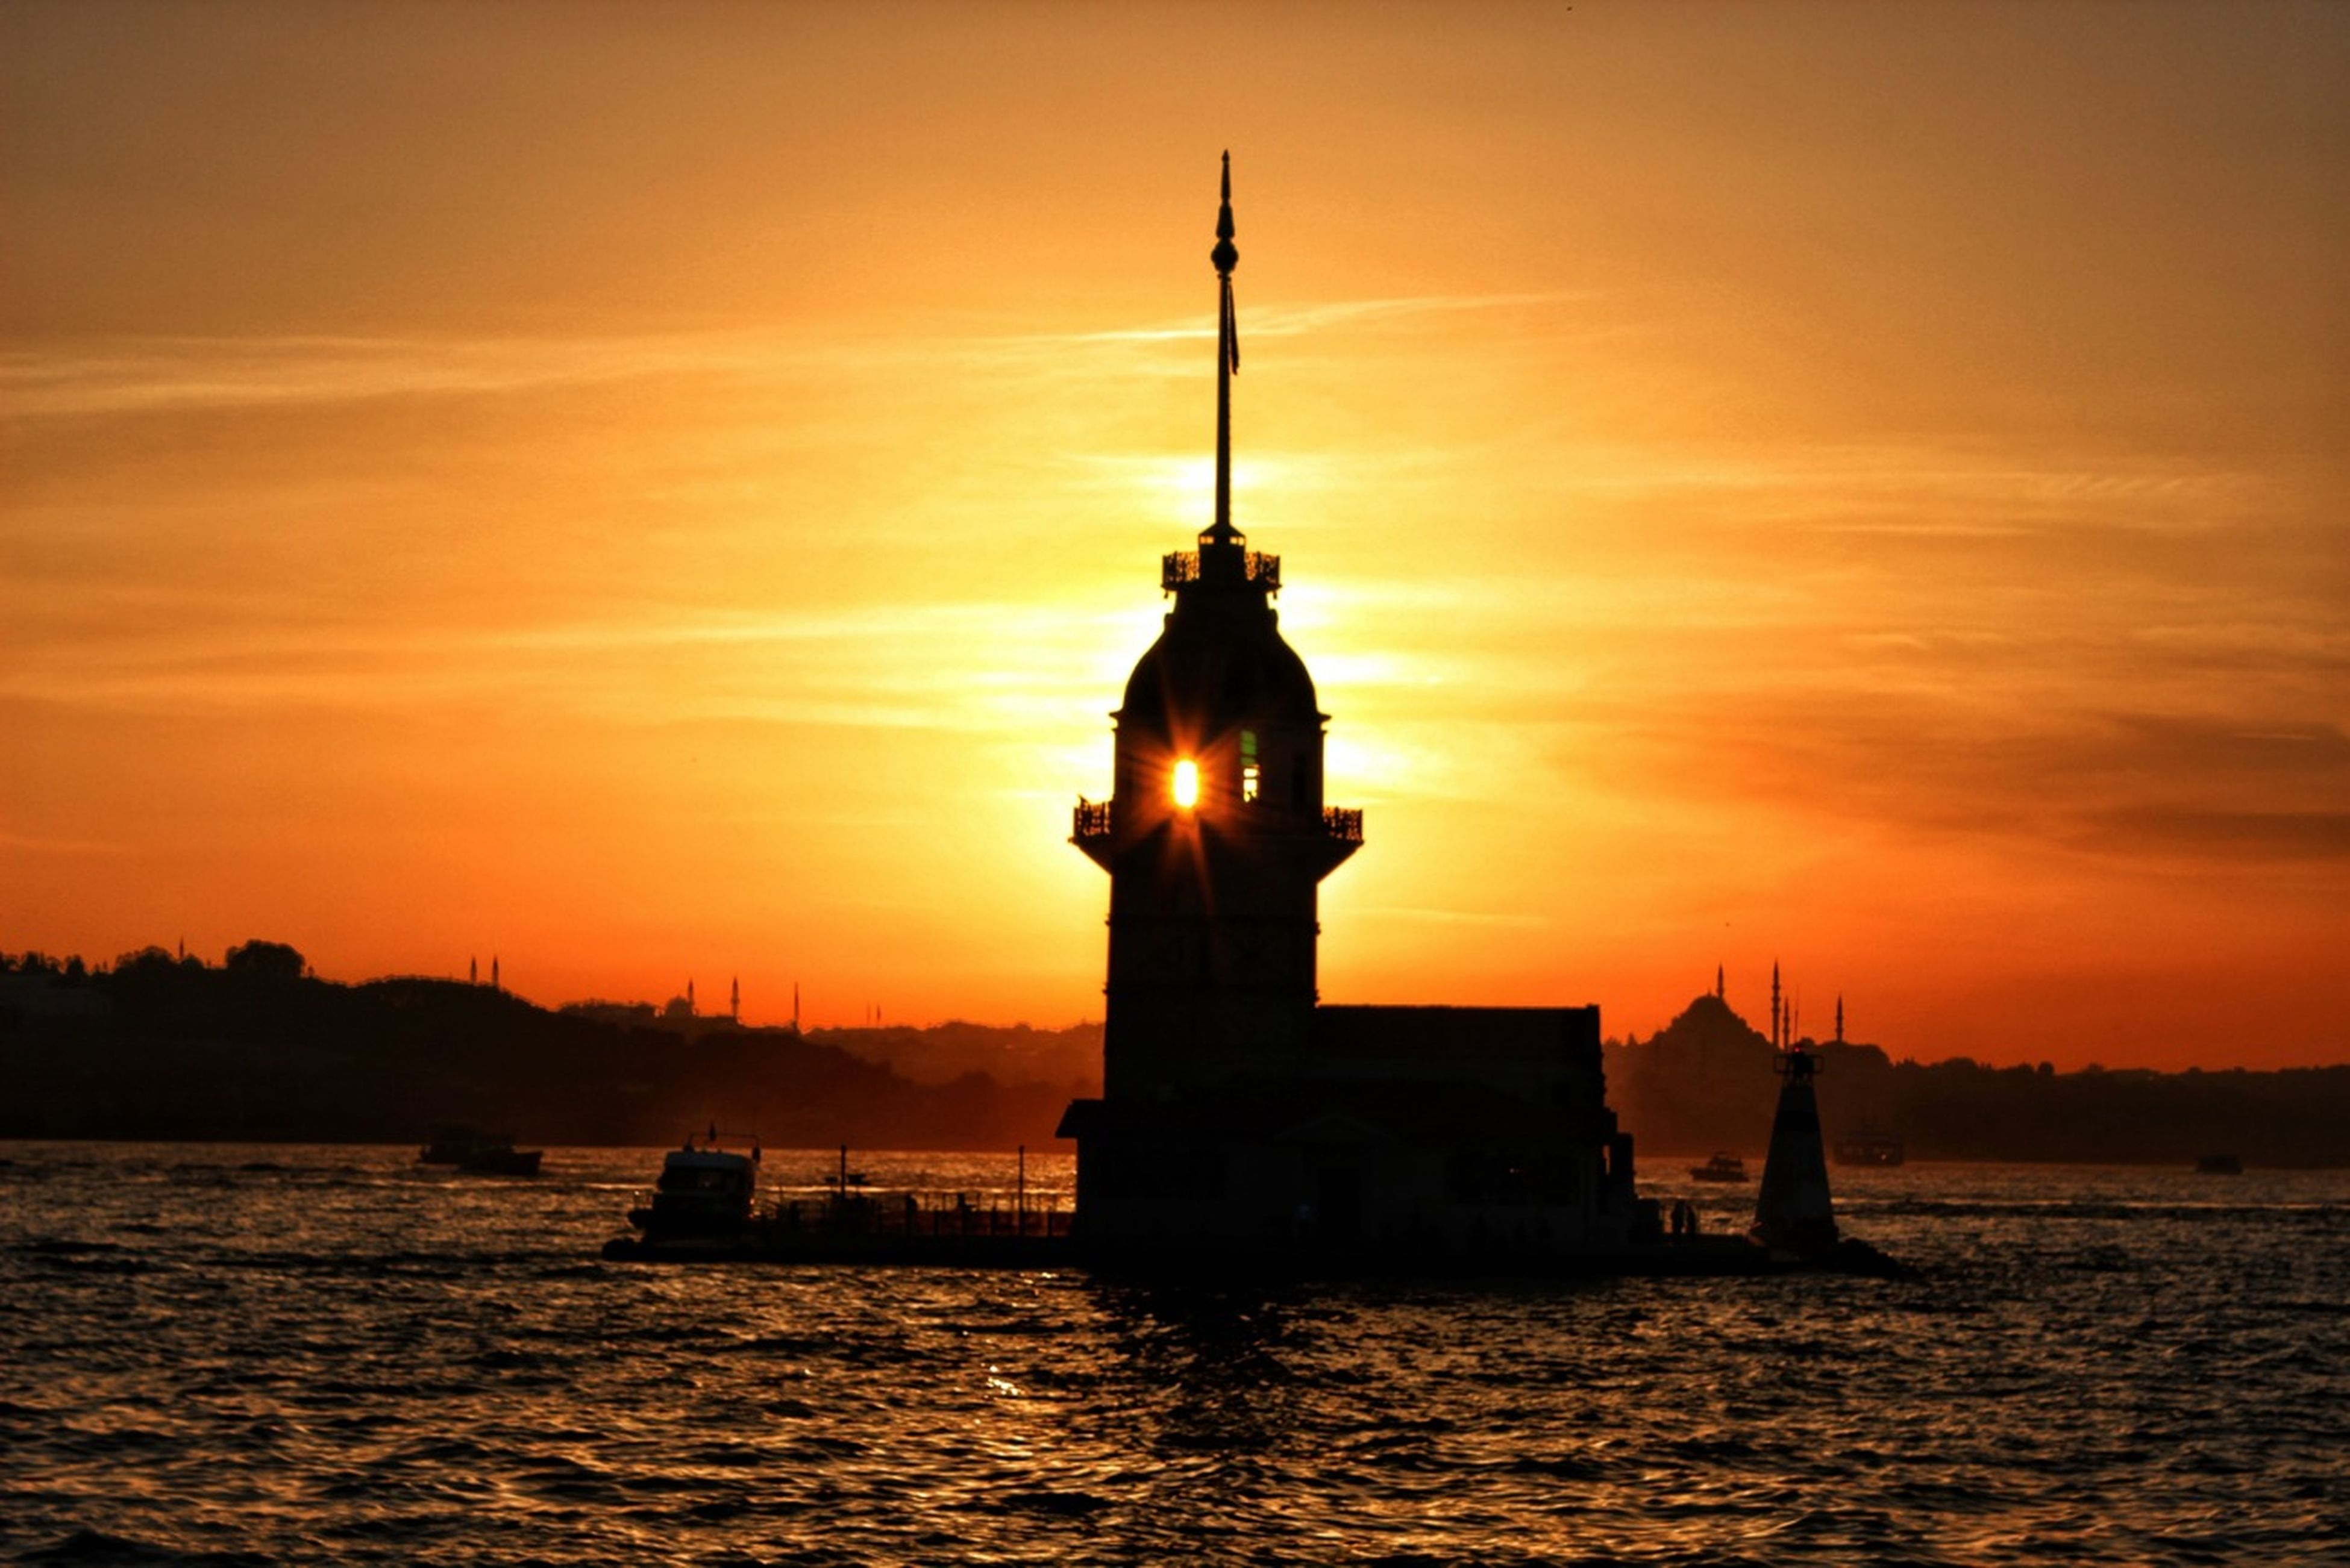 sunset, silhouette, water, orange color, waterfront, architecture, built structure, sea, sky, building exterior, sun, scenics, rippled, beauty in nature, lighthouse, nature, tranquility, tranquil scene, idyllic, cloud - sky